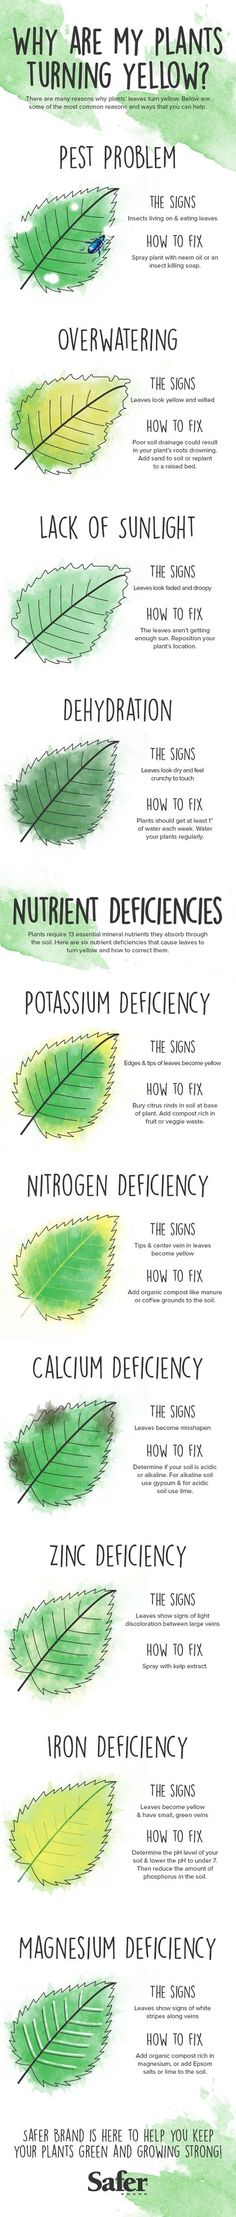 INFOGRAPHIC: Why are my plants turning yellow? | Inhabitat - Sustainable Design Innovation, Eco Architecture, Green Building